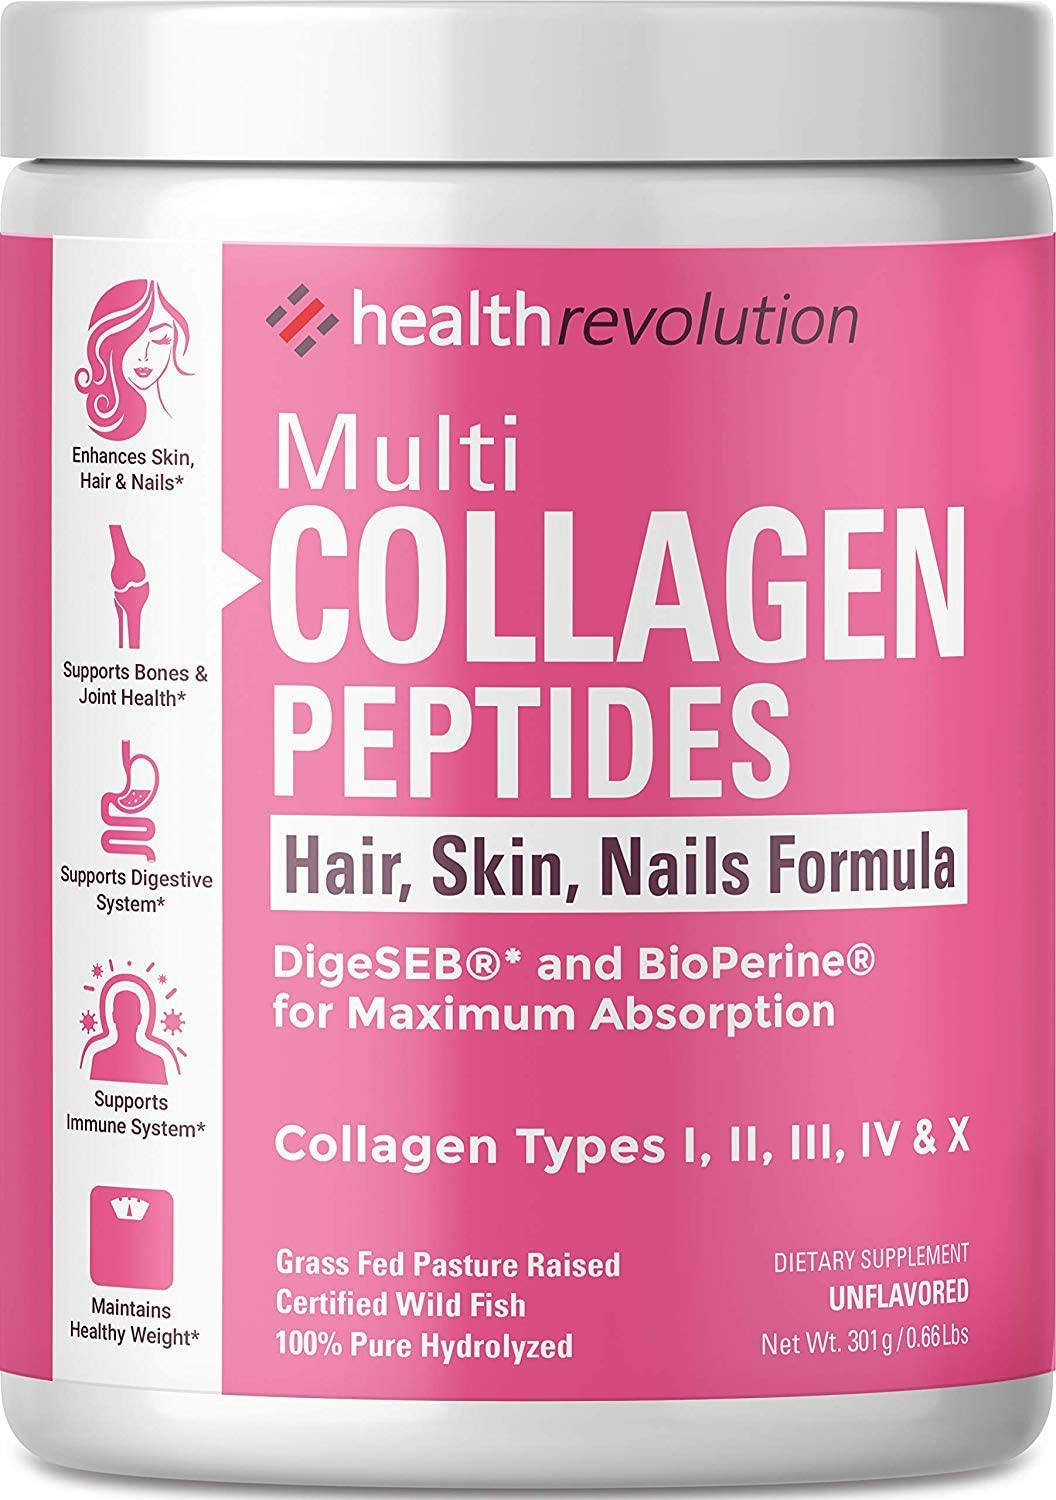 Health Revolution Multi Collagen Powder for Women – 5 Hydrolyzed Collagen Peptides Types I, II, III, IV, and X – Supports Joints, Skin, Hair and Nails – Non-GMO, Gluten-Free, Unflavored